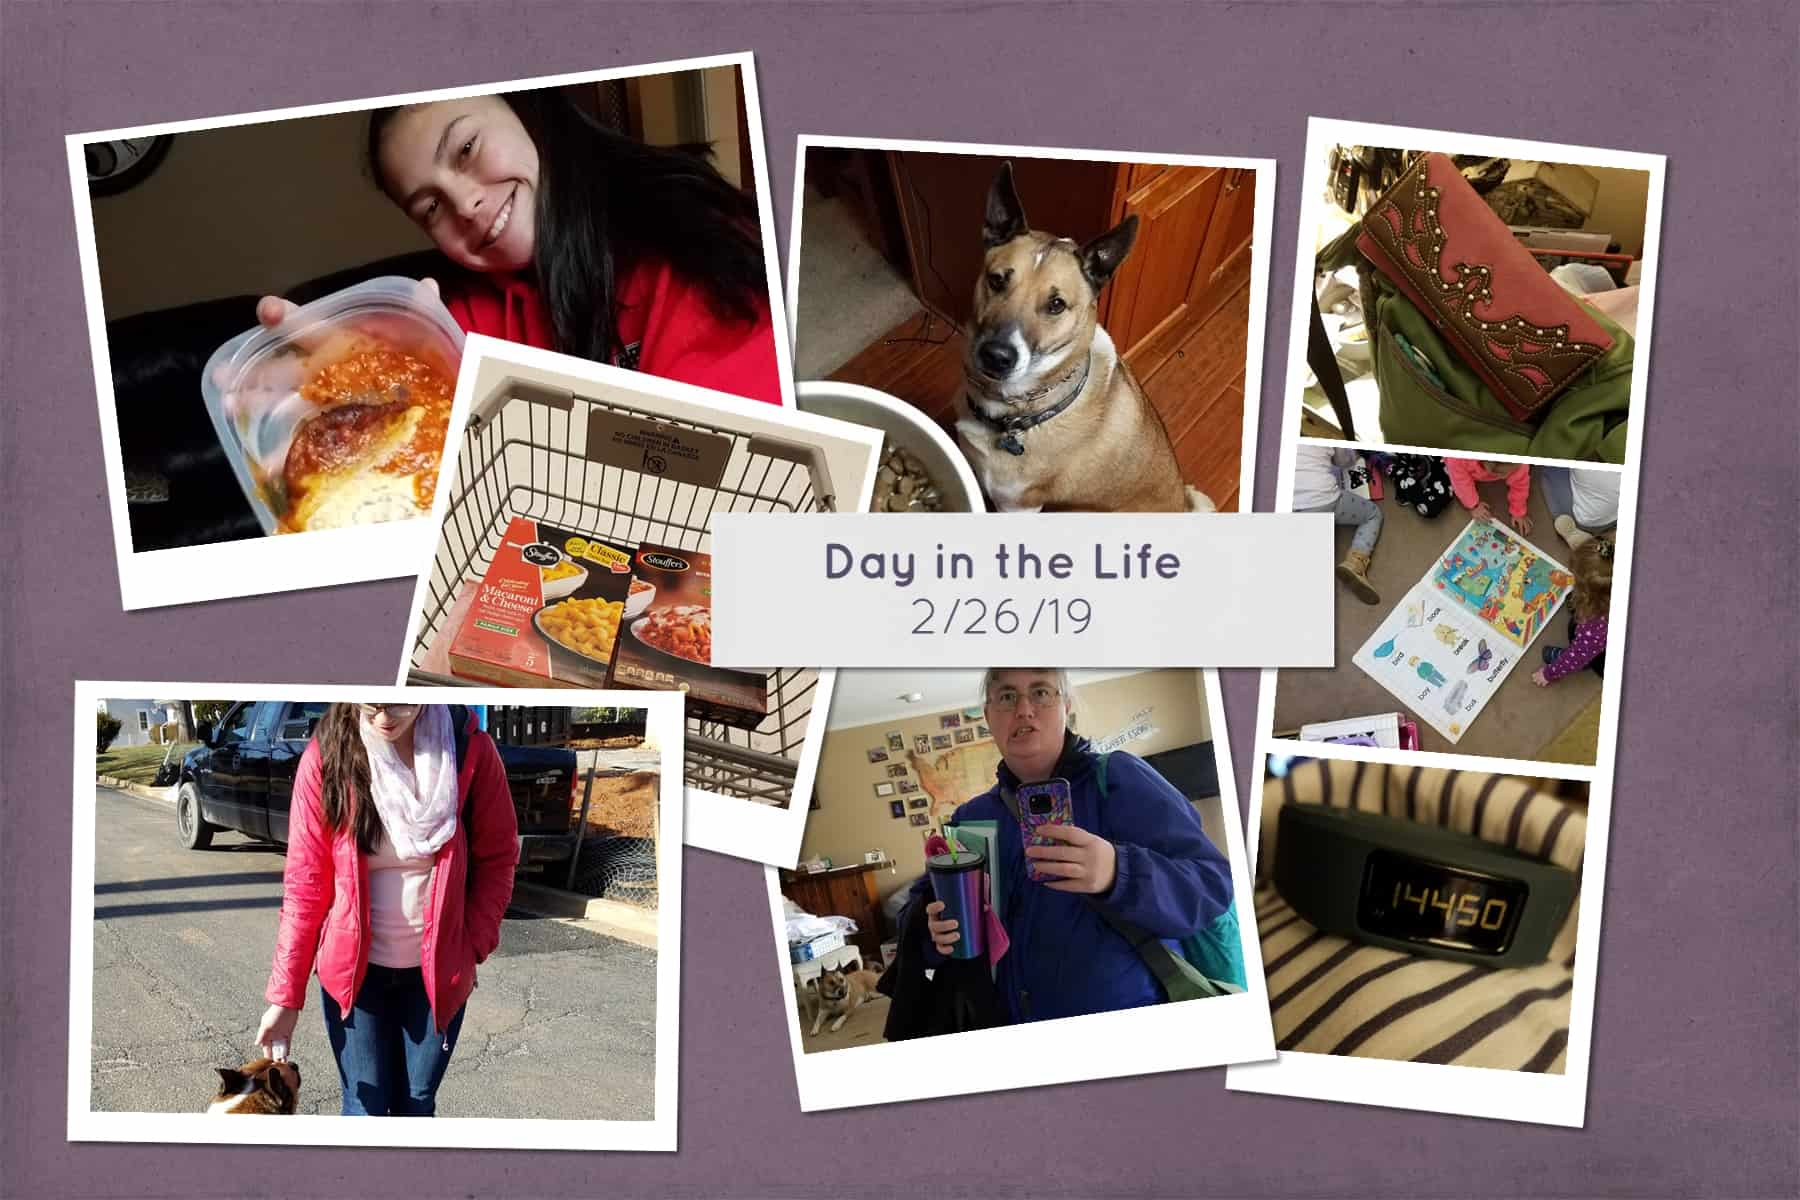 Day in the Life February 2019 via @behindeveryday